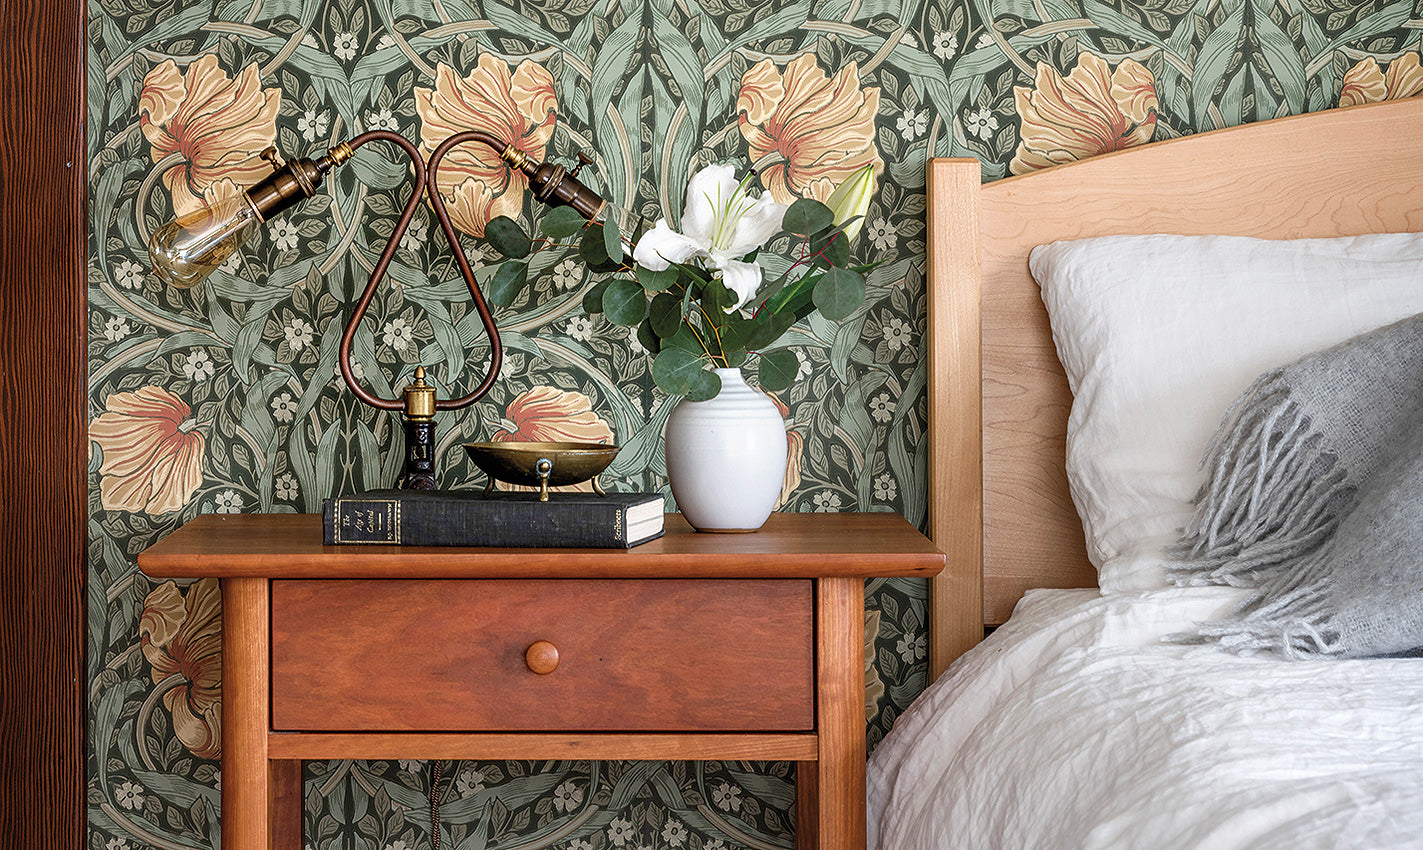 Accent wall in a green and pink floral pattern/Photographer: Aaron Leitz/A child's room designed by Anna Thomassen features an Art Nouveau accent wall.